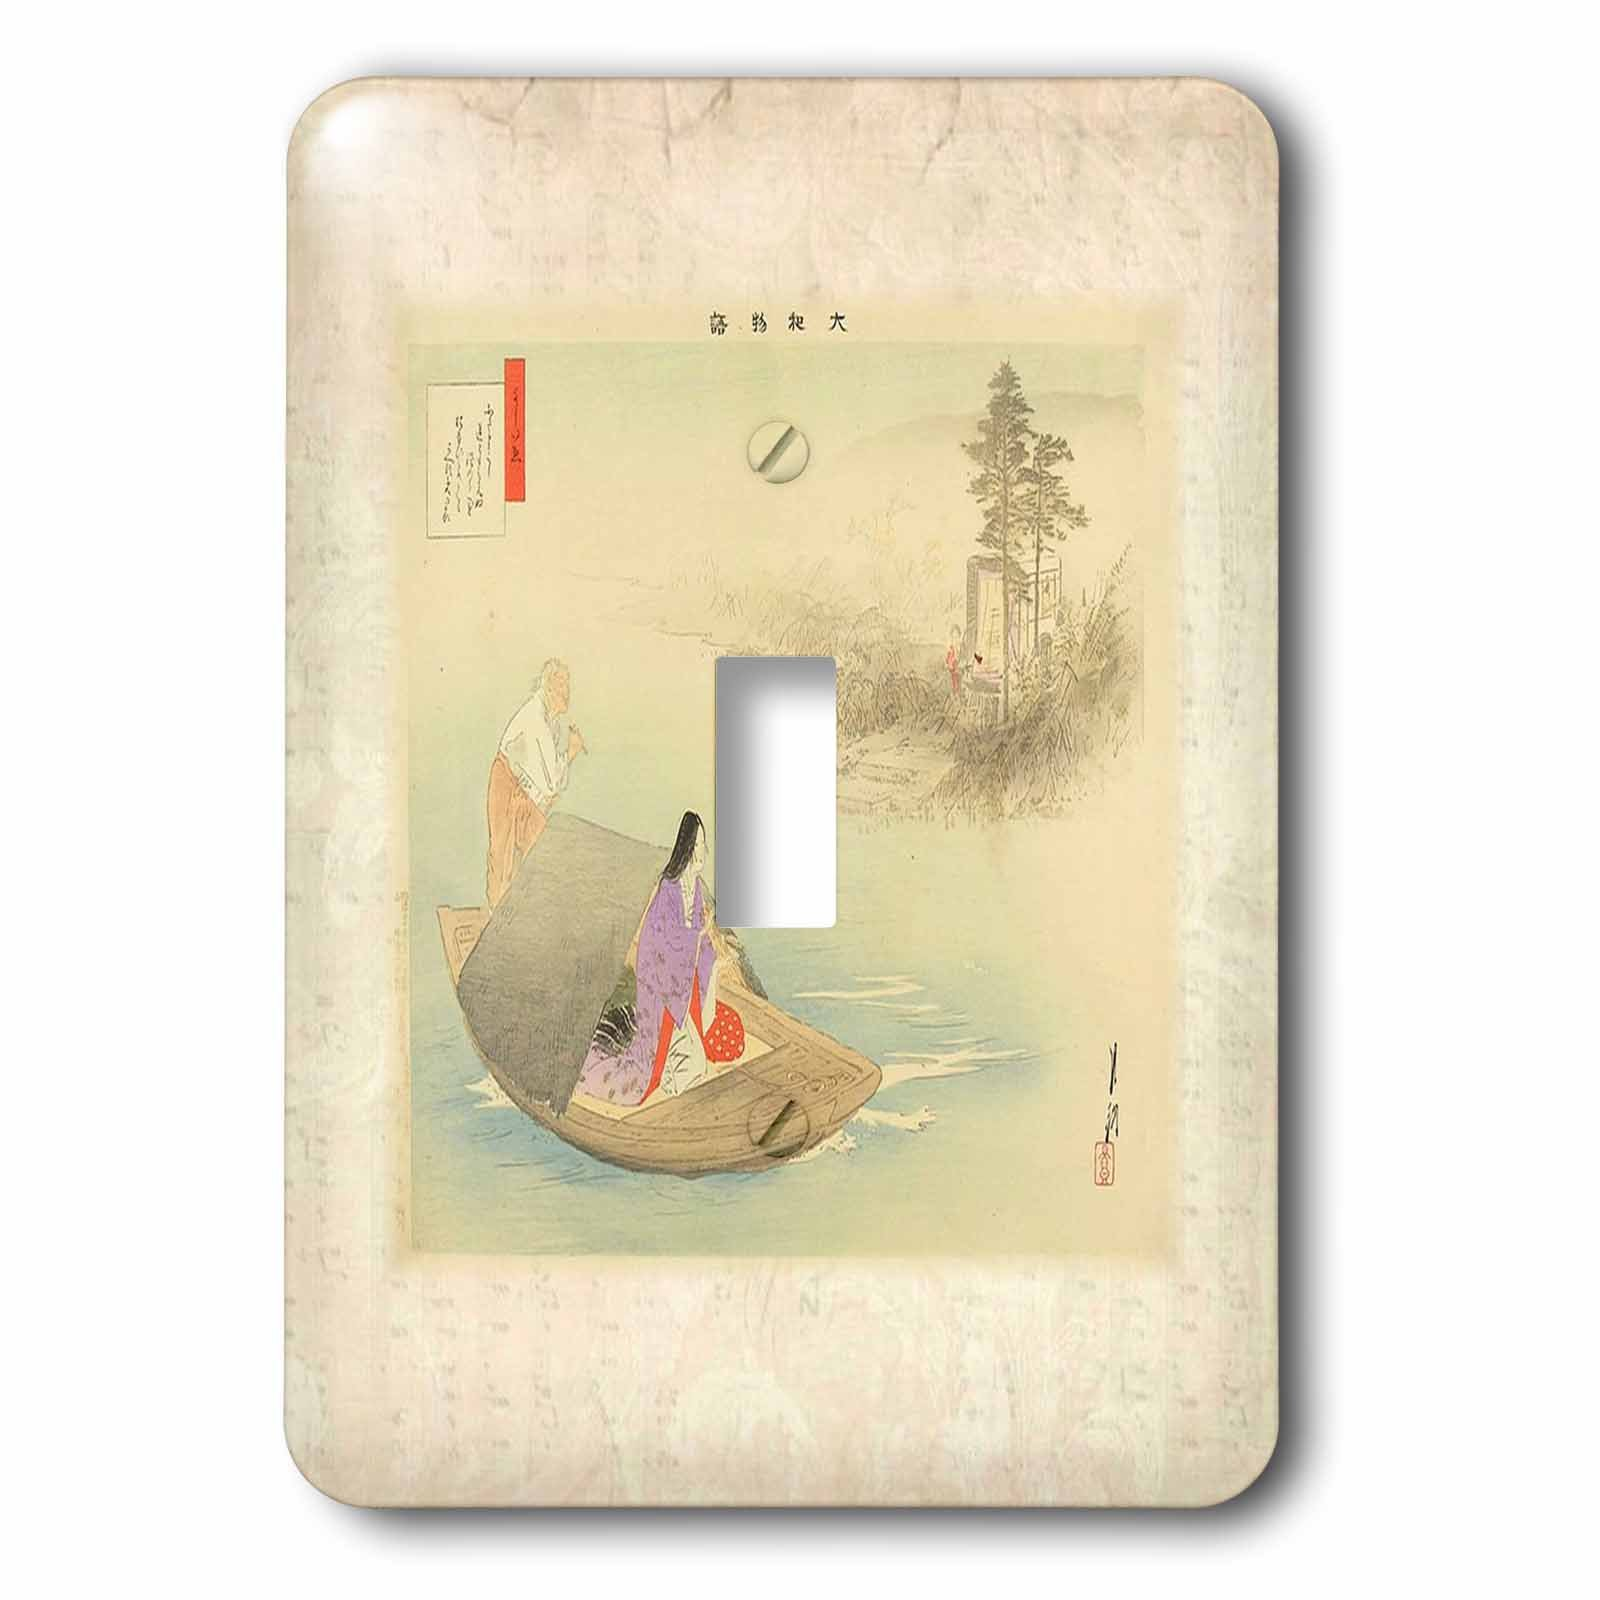 3dRose lsp_255493_1 Image of Japanese Man and Woman in Boat Painting Toggle Switch, Mixed by 3dRose